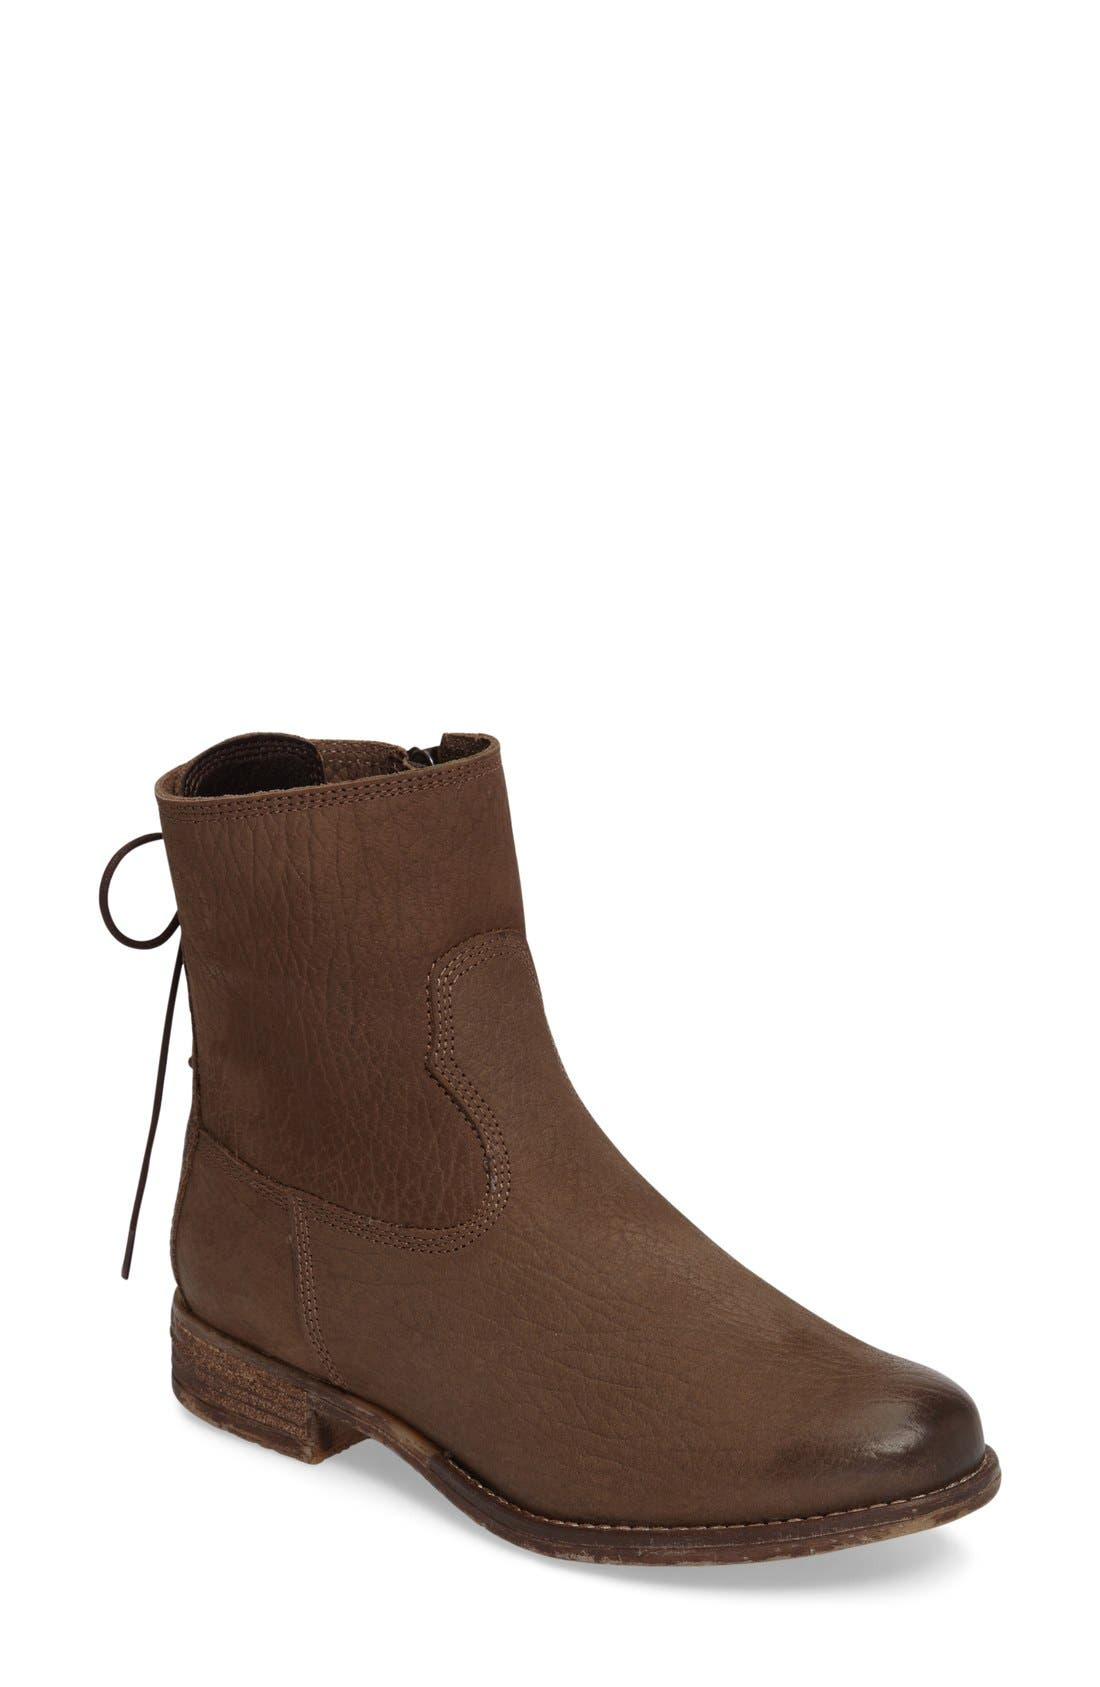 Sienna 01 Lace Back Bootie,                         Main,                         color, Taupe Leather